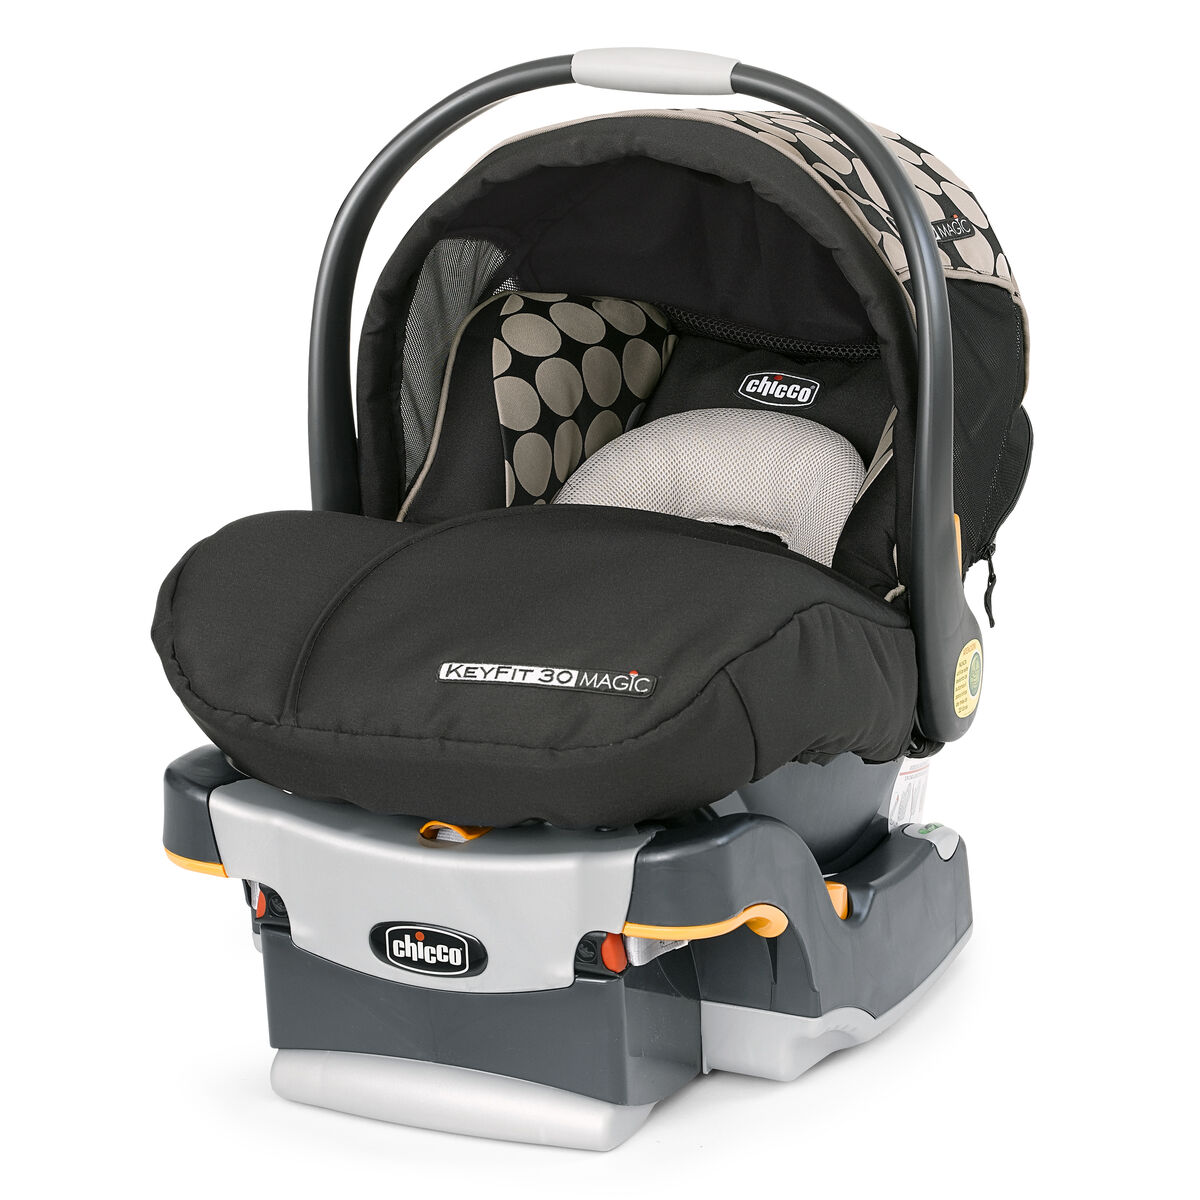 chicco chicco keyfit 30 magic infant car seat solare. Black Bedroom Furniture Sets. Home Design Ideas